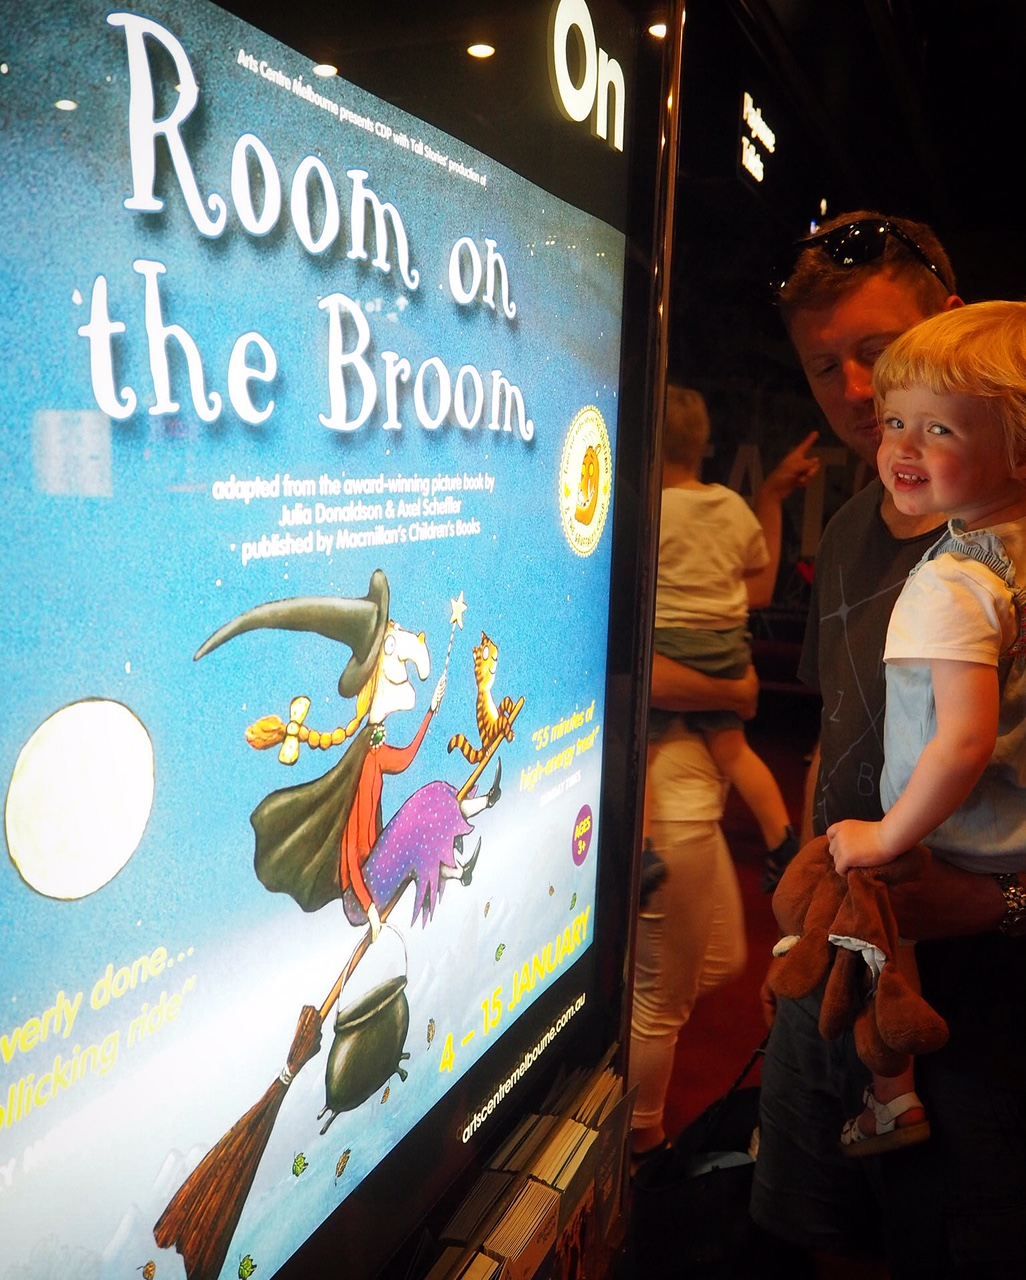 roomonthebroom01.jpg